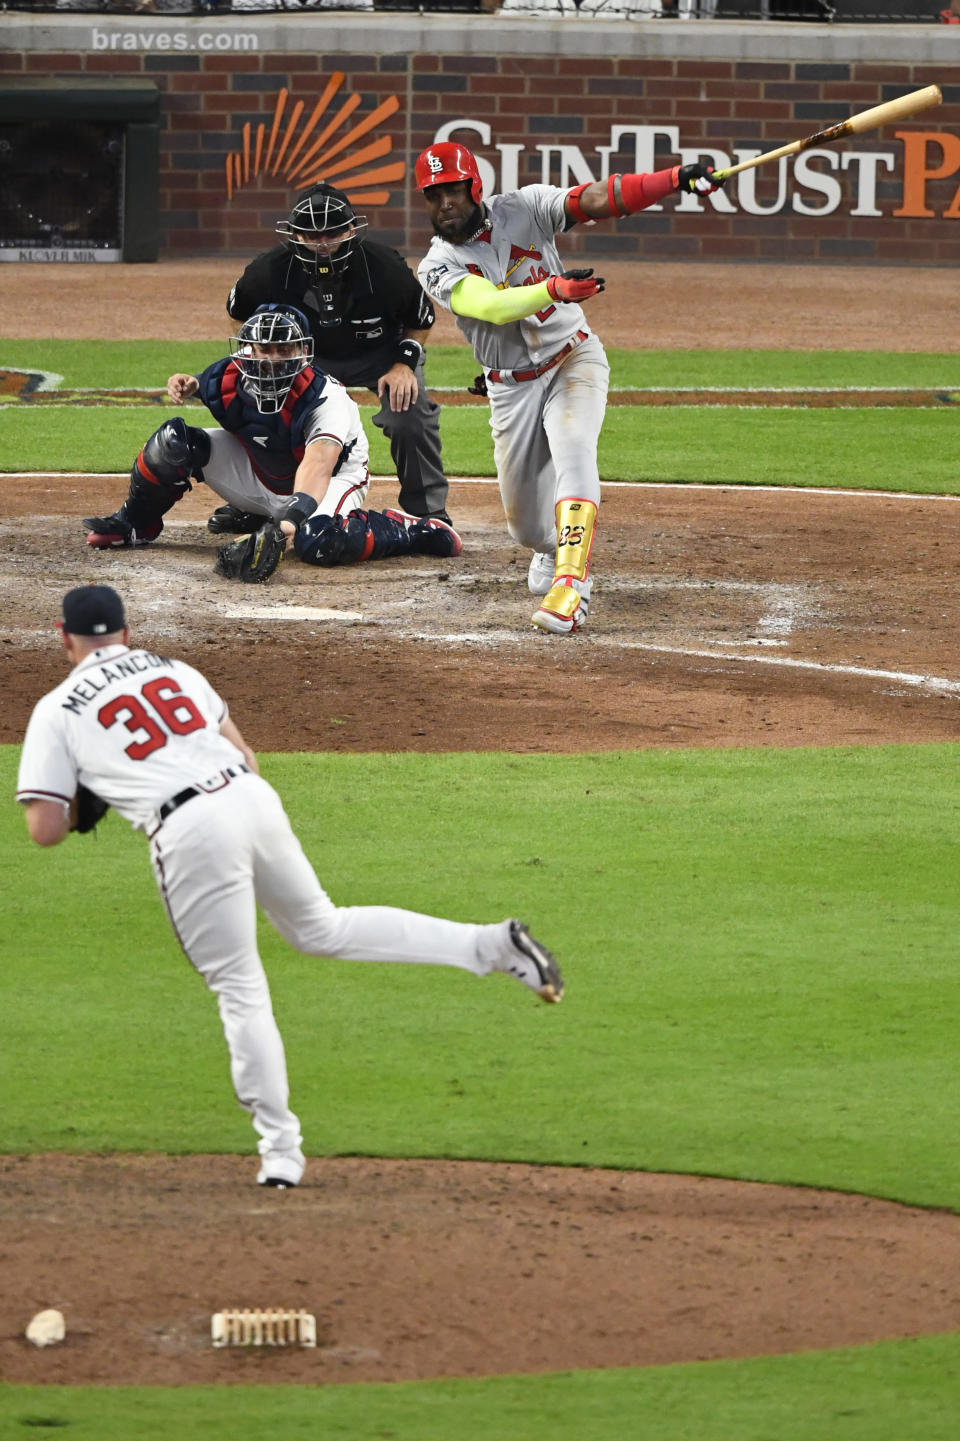 St. Louis Cardinals left fielder Marcell Ozuna (23) hits a two RBI double against the Atlanta Braves in the ninth inning during Game 1 of a best-of-five National League Division Series, Thursday, Oct. 3, 2019, in Atlanta. (AP Photo/Scott Cunningham)